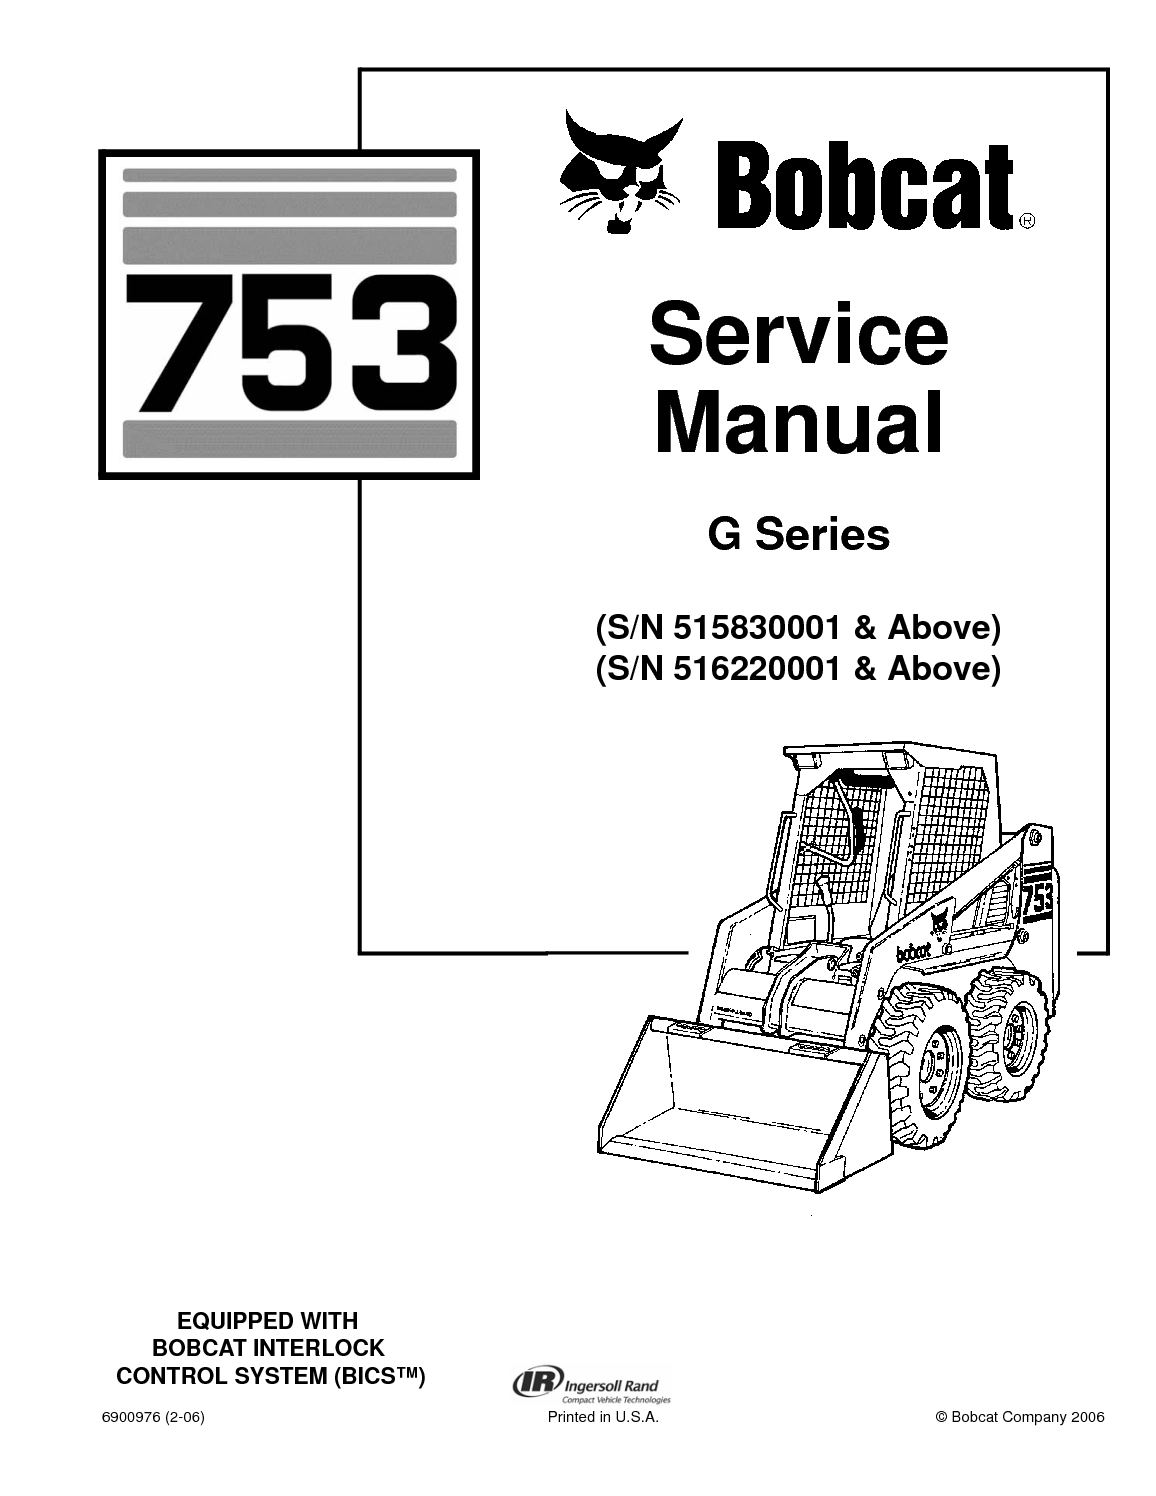 Calaméo - BOBCAT 753 SKID STEER LOADER Service Repair Manual